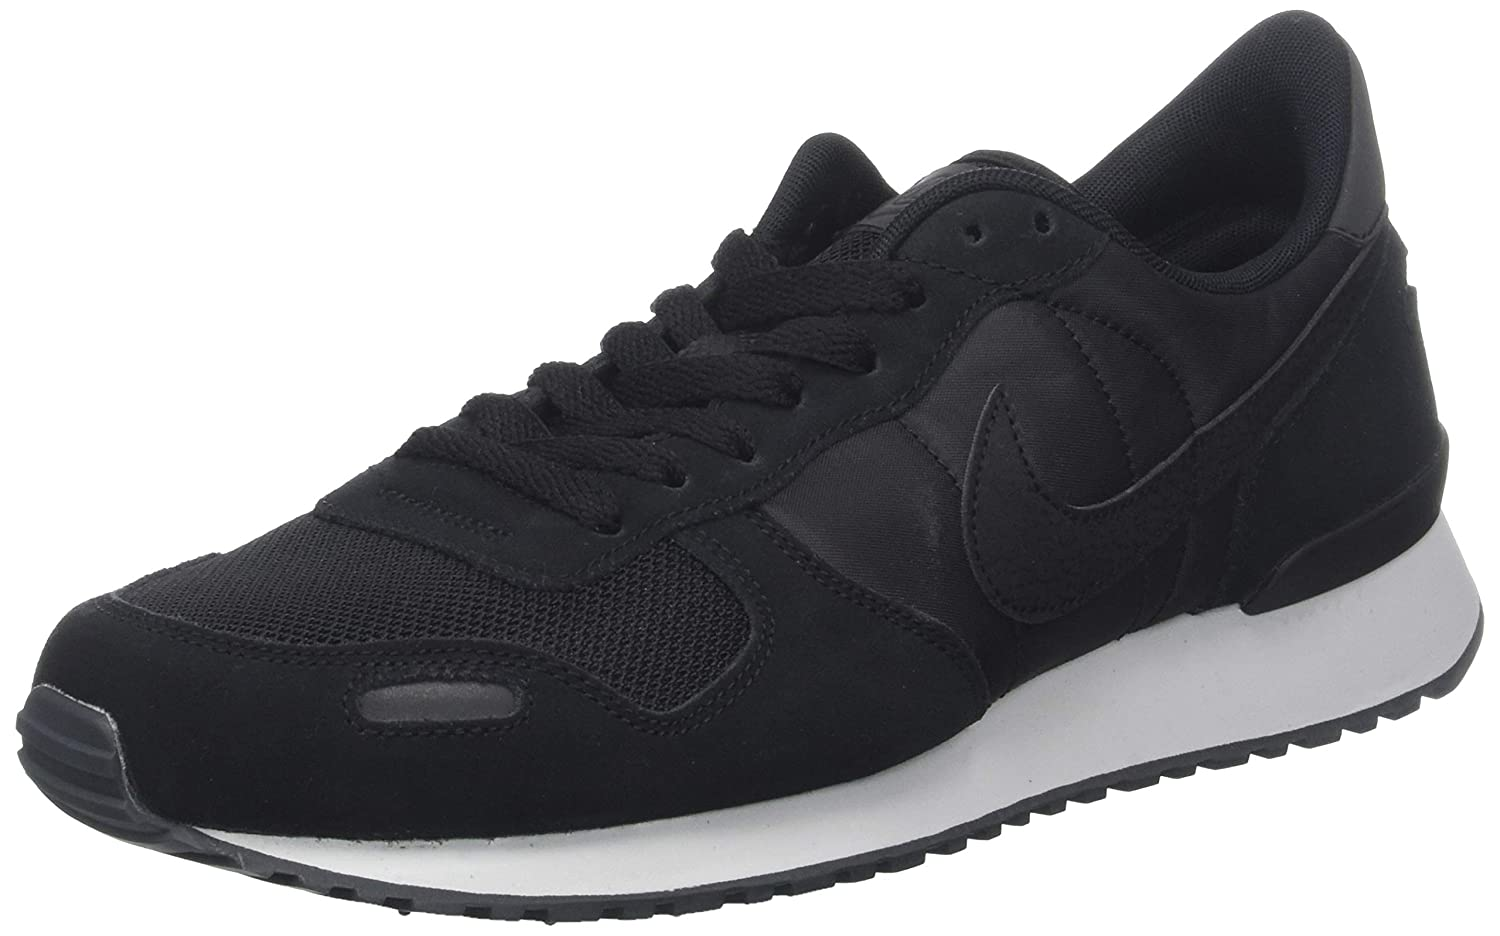 buy popular 960d9 b5e4c Nike Air Vrtx, Chaussures de Fitness Homme  Amazon.fr  Chaussures et Sacs